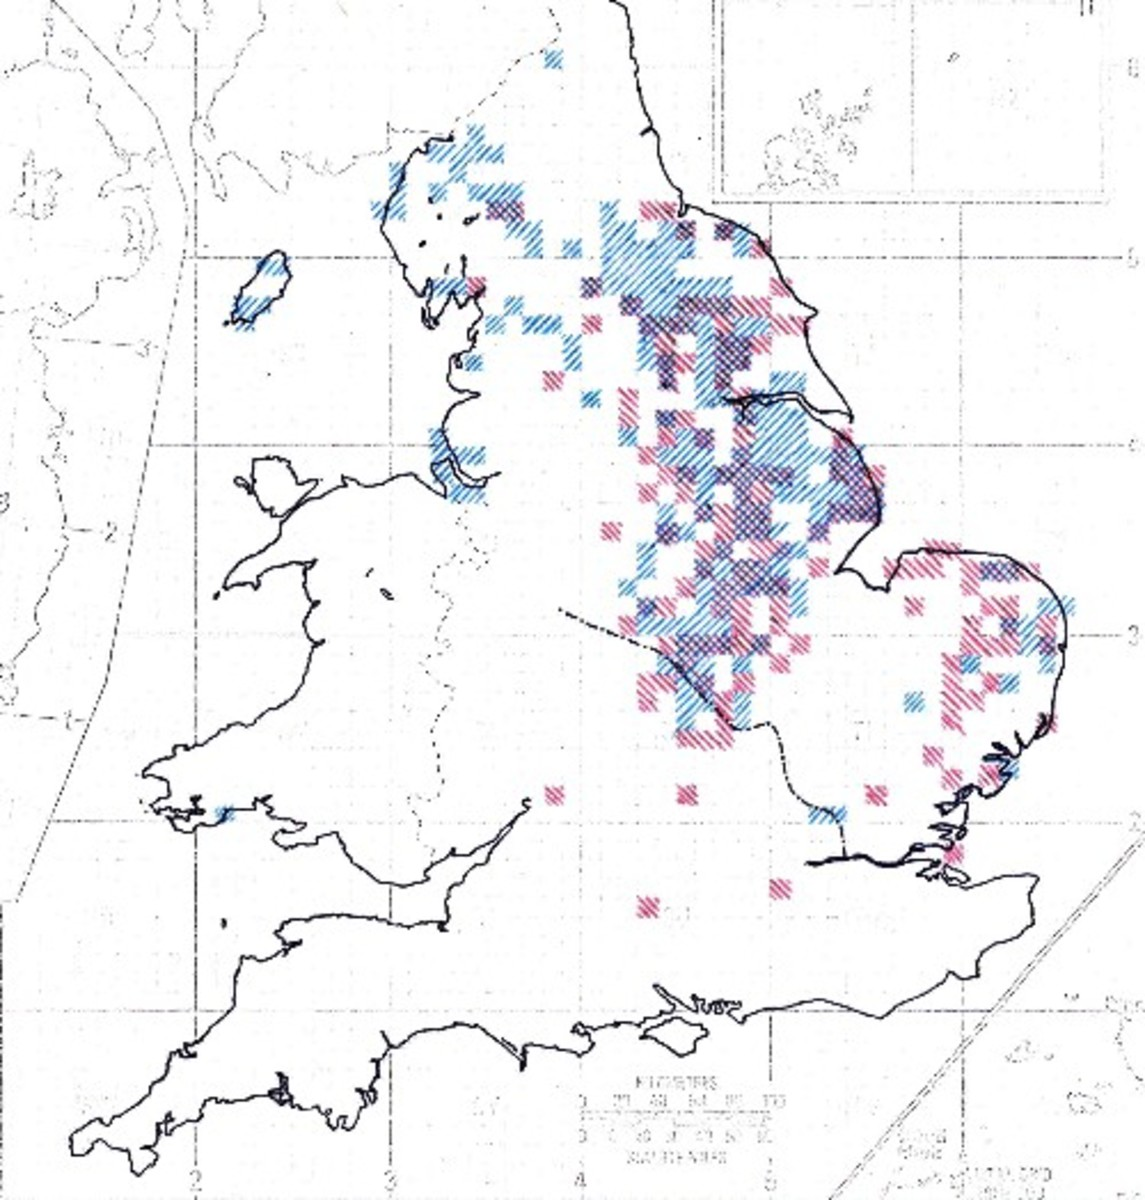 Distribution of Danish and Norse place names in Eastern and North-western England, endings: 'by', 'toft', 'thorpe' and 'thwaite' are evident in any search of a road atlas in these parts. By rights SW Wales should have a coloured square, look at a map